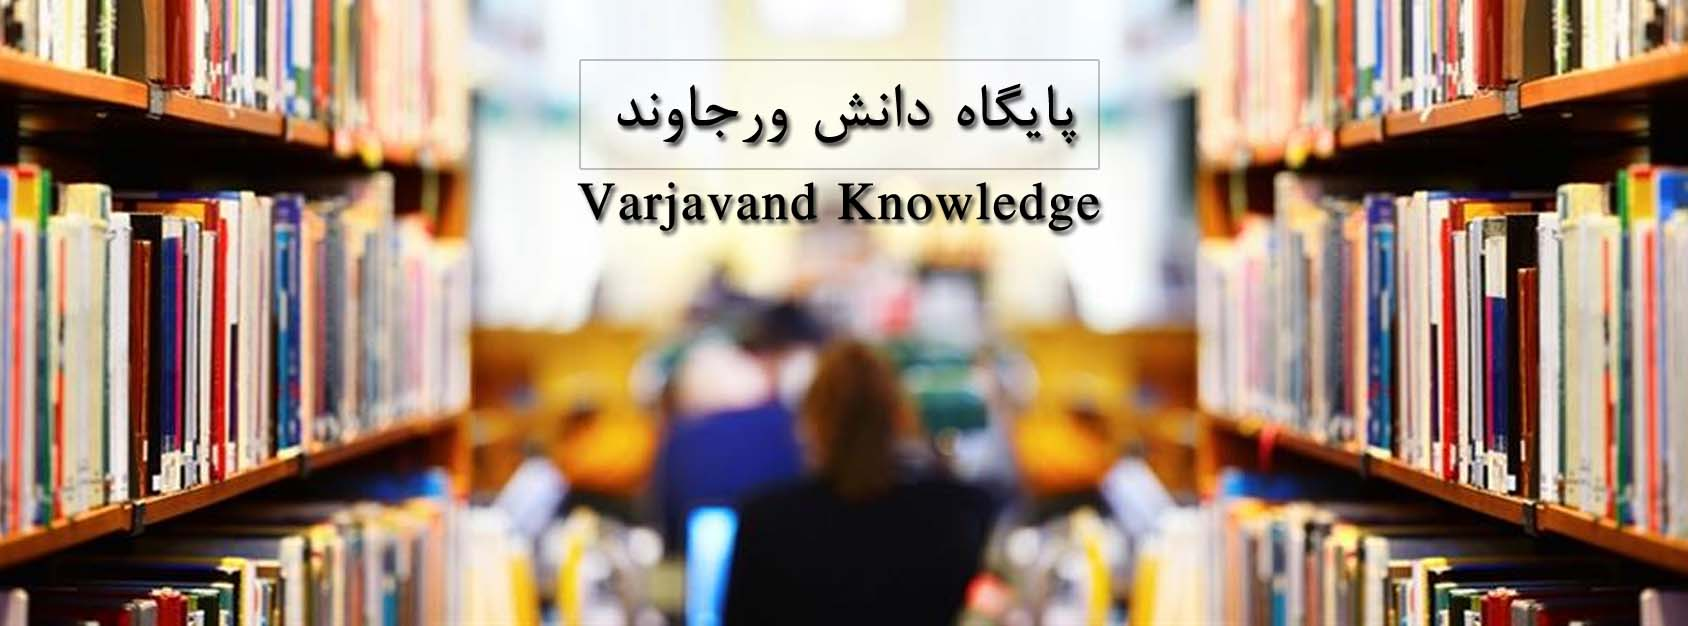 Varjavand Knowledge